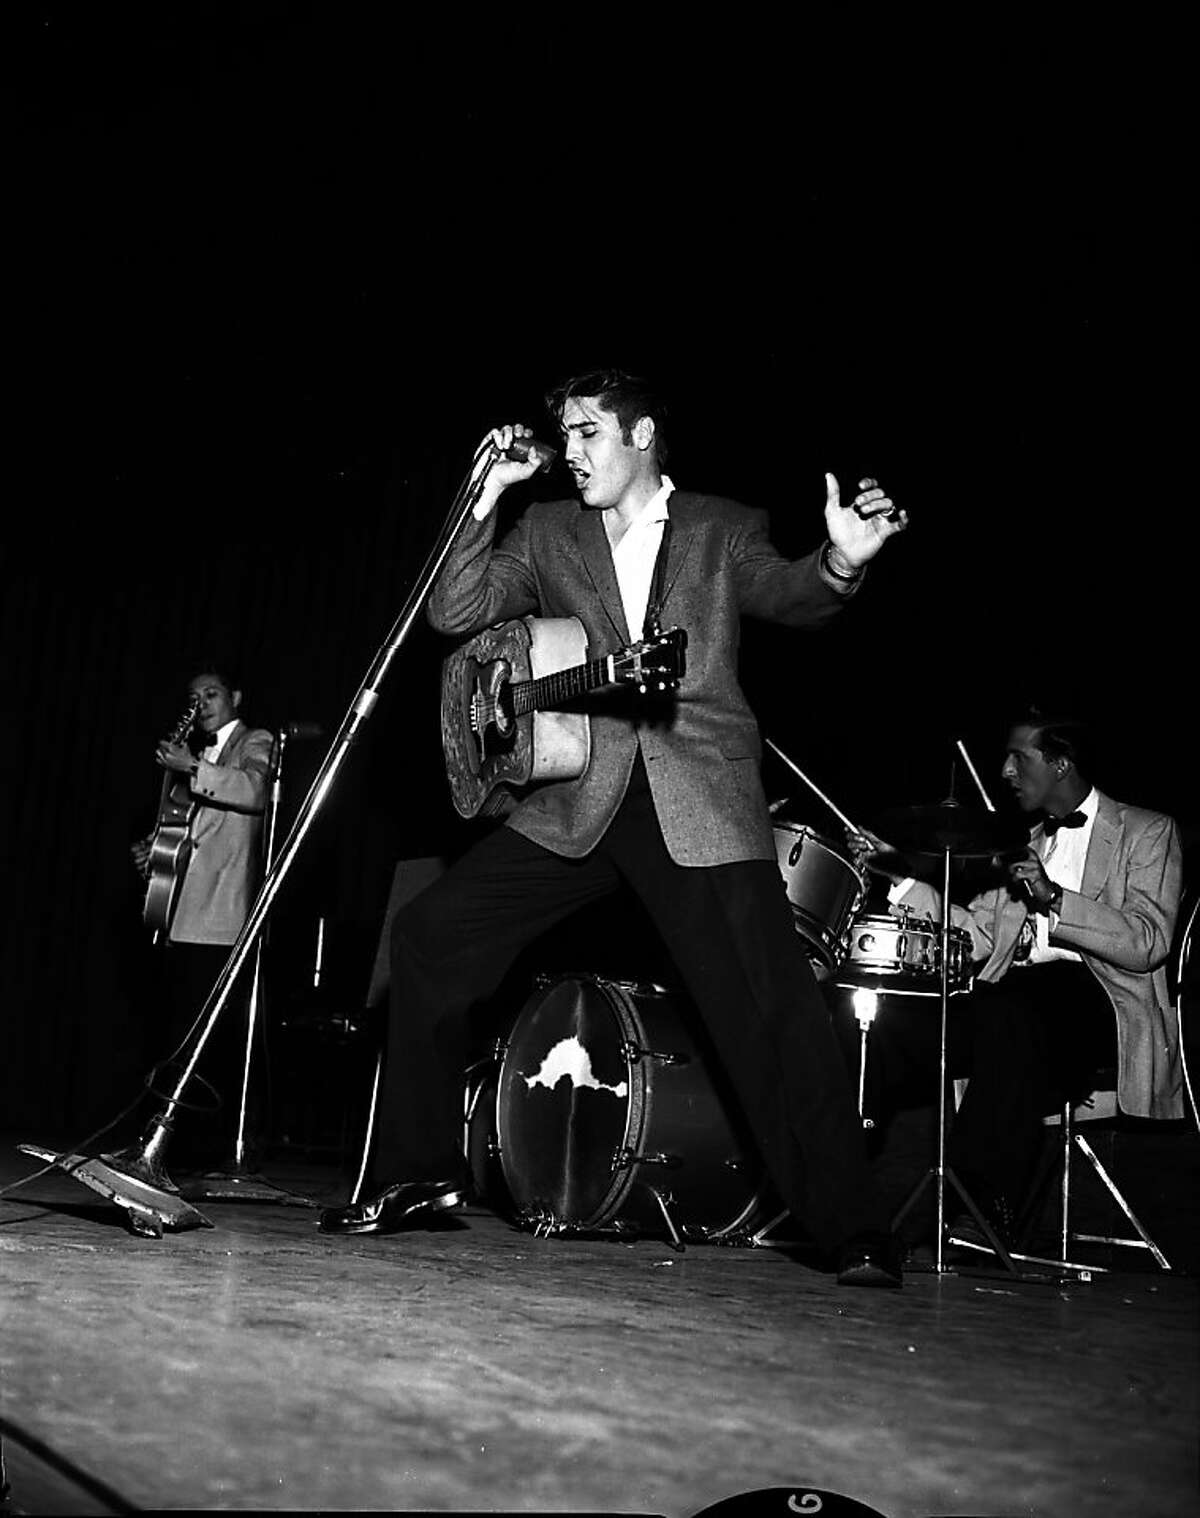 PRESLEY11-21JUN56-CAMPBELL - Elvis Presley at the 1956 Presley Concert in Oakland. Photo by Bob Campbell Ran on: 05-28-2006 Elvis Presley did two shows in Oakland on June 3, 1956. Ran on: 11-27-2011 Photo caption Dummy text goes here. Dummy text goes here. Dummy text goes here. Dummy text goes here. Dummy text goes here. Dummy text goes here. Dummy text goes here. Dummy text goes here.###Photo: fiveplaces13_ph20Chronicle###Live Caption:Elvis Presley at the 1956 concert in Oakland.###Caption History:PRESLEY11-21JUN56-CAMPBELL - Elvis Presley at the 1956 Presley Concert in Oakland. Photo by Bob Campbell Ran on: 05-28-2006 Elvis Presley did two shows in Oakland on June 3, 1956.###Notes:###Special Instructions: